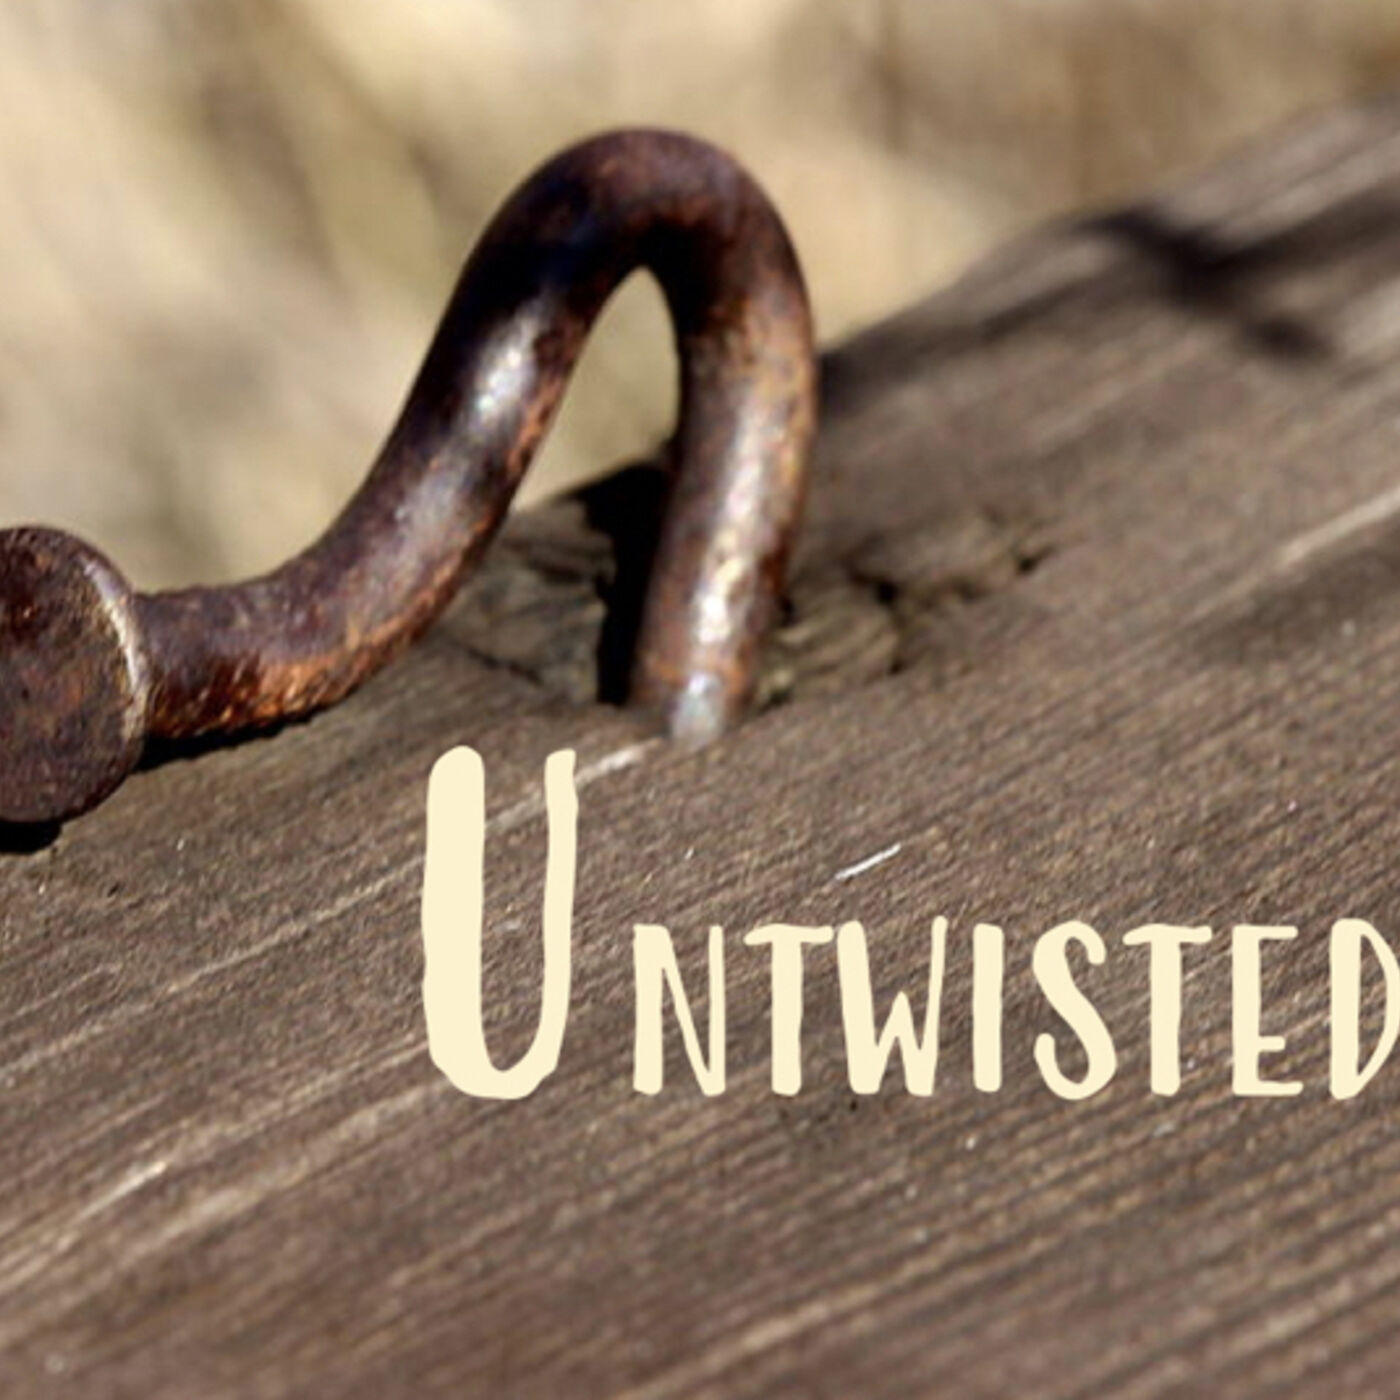 Untwisted: Walls (Self-Control)